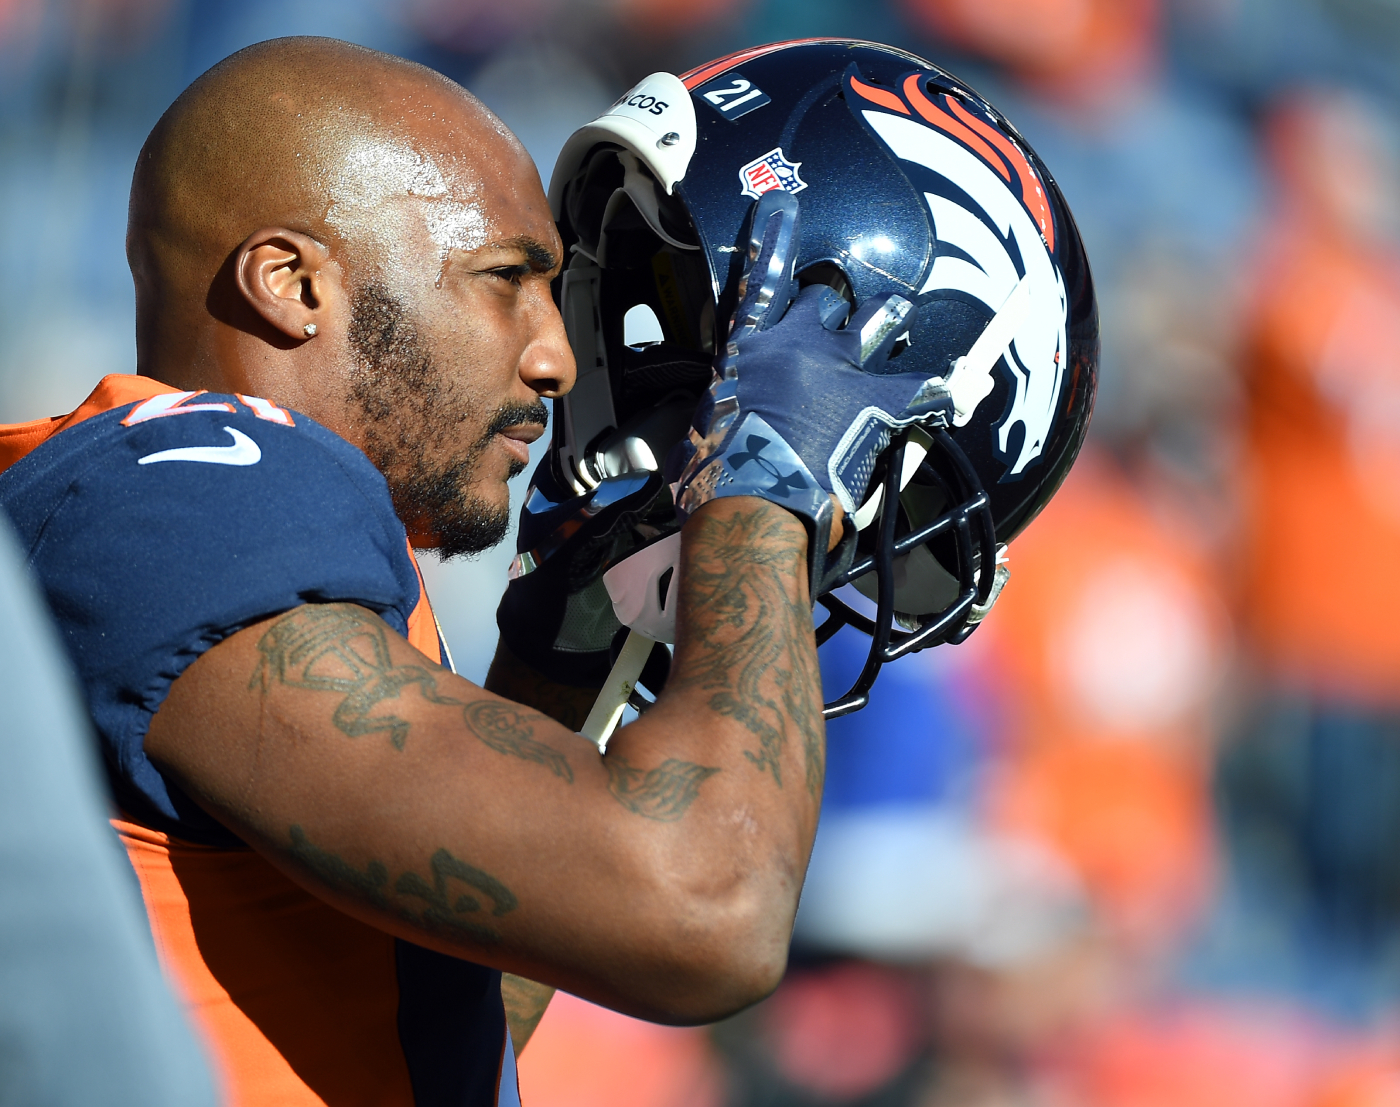 Aqib Talib described what it was like to play football on Adderall.